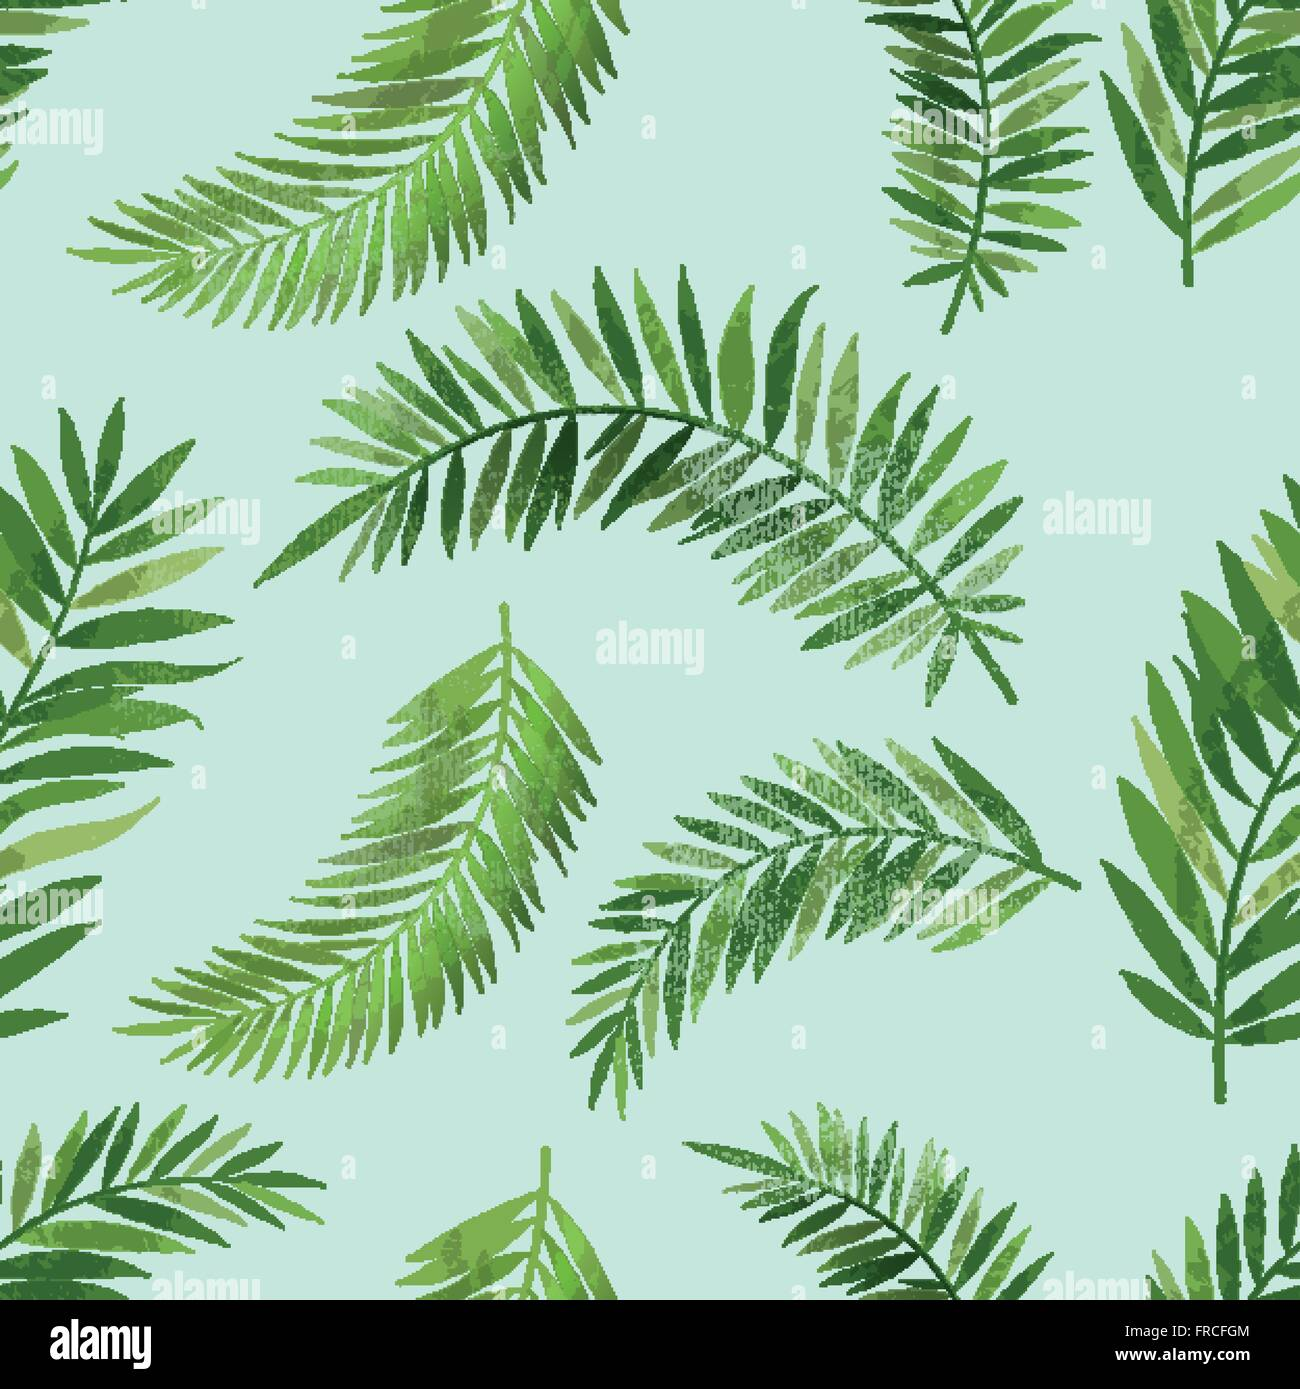 Vintage Seamless tropical palm leaf pattern with texture effect. Vector background illustration. - Stock Image